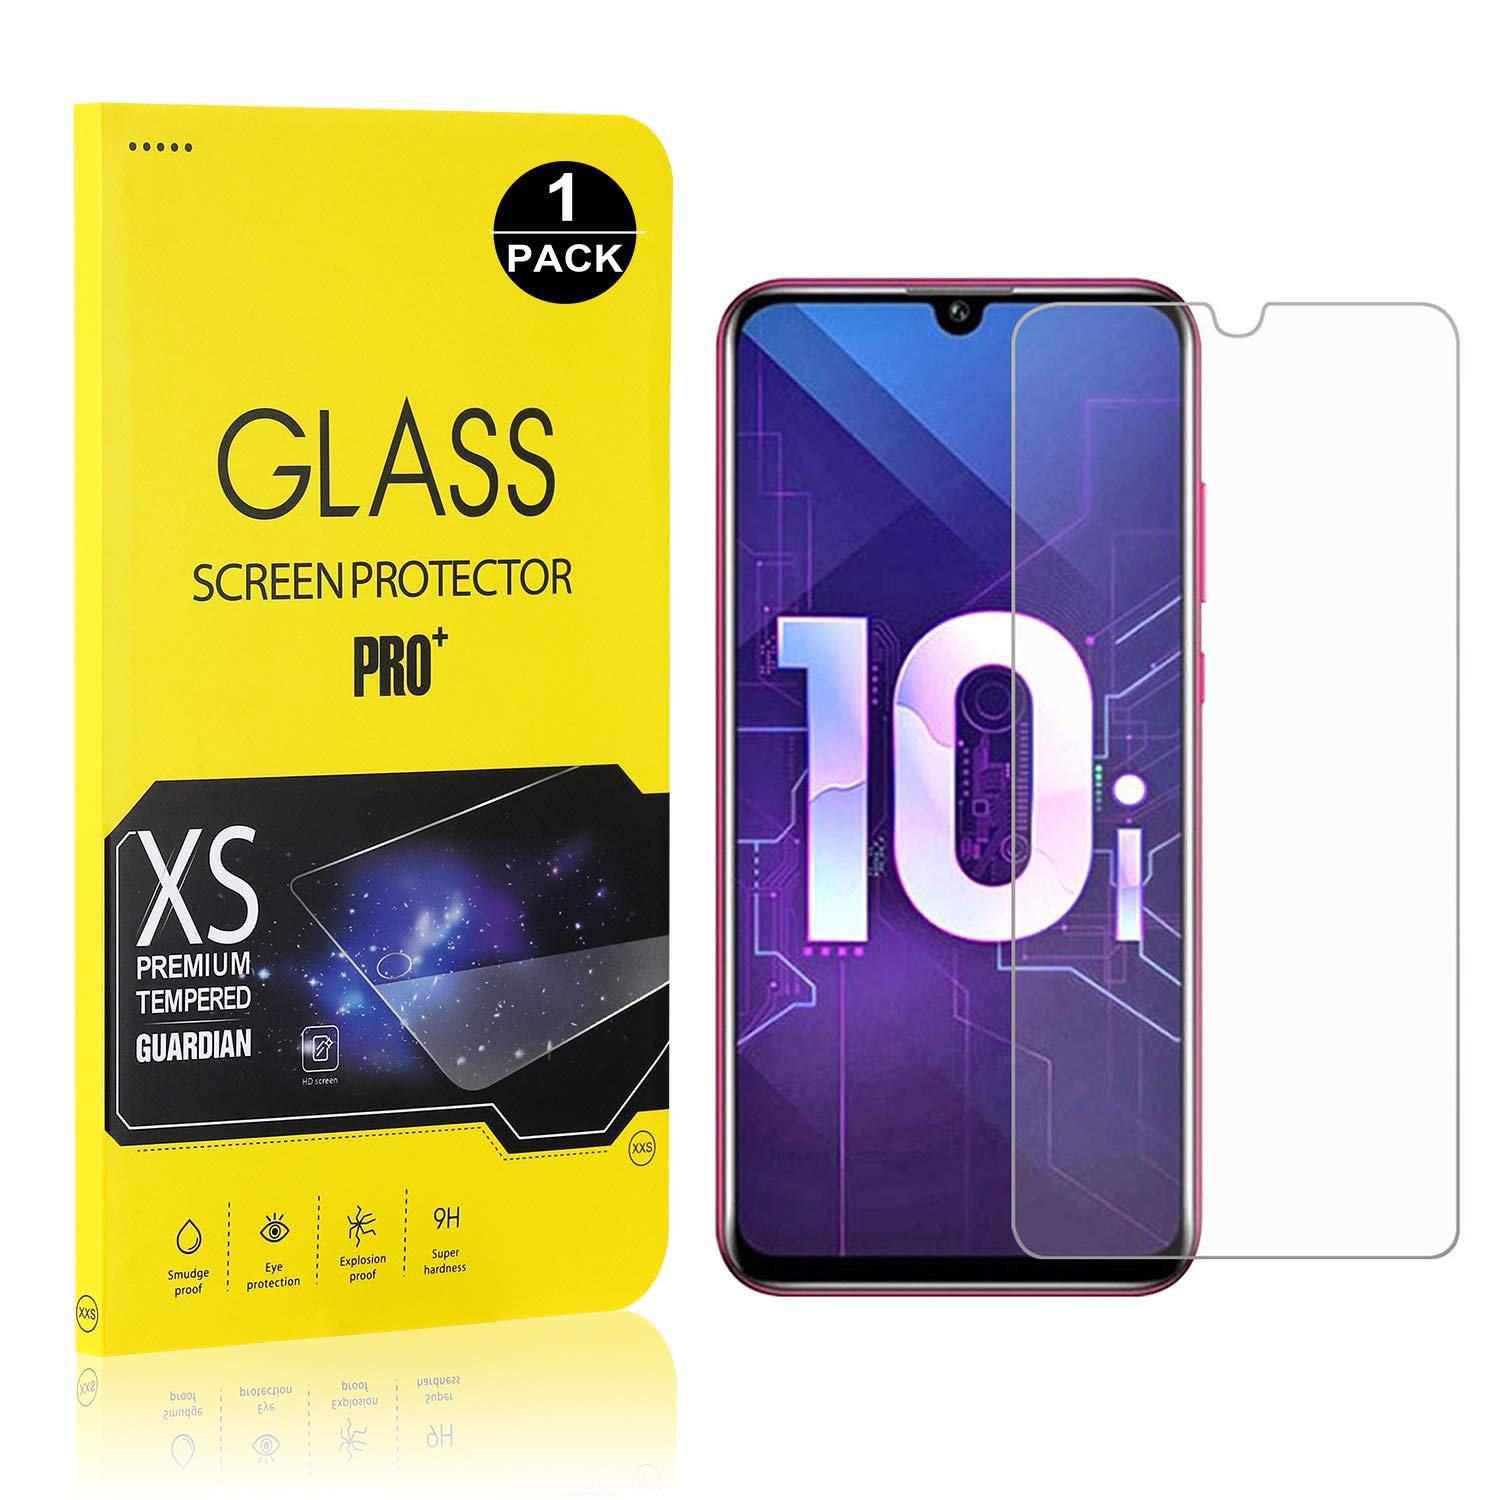 9H Hardness Tempered Glass Screen Protector Film for Huawei P Smart Plus 2019 2 Pack Anti Scratches Bear Village/® Premium Screen Protector for Huawei P Smart Plus 2019 Ultra Thin